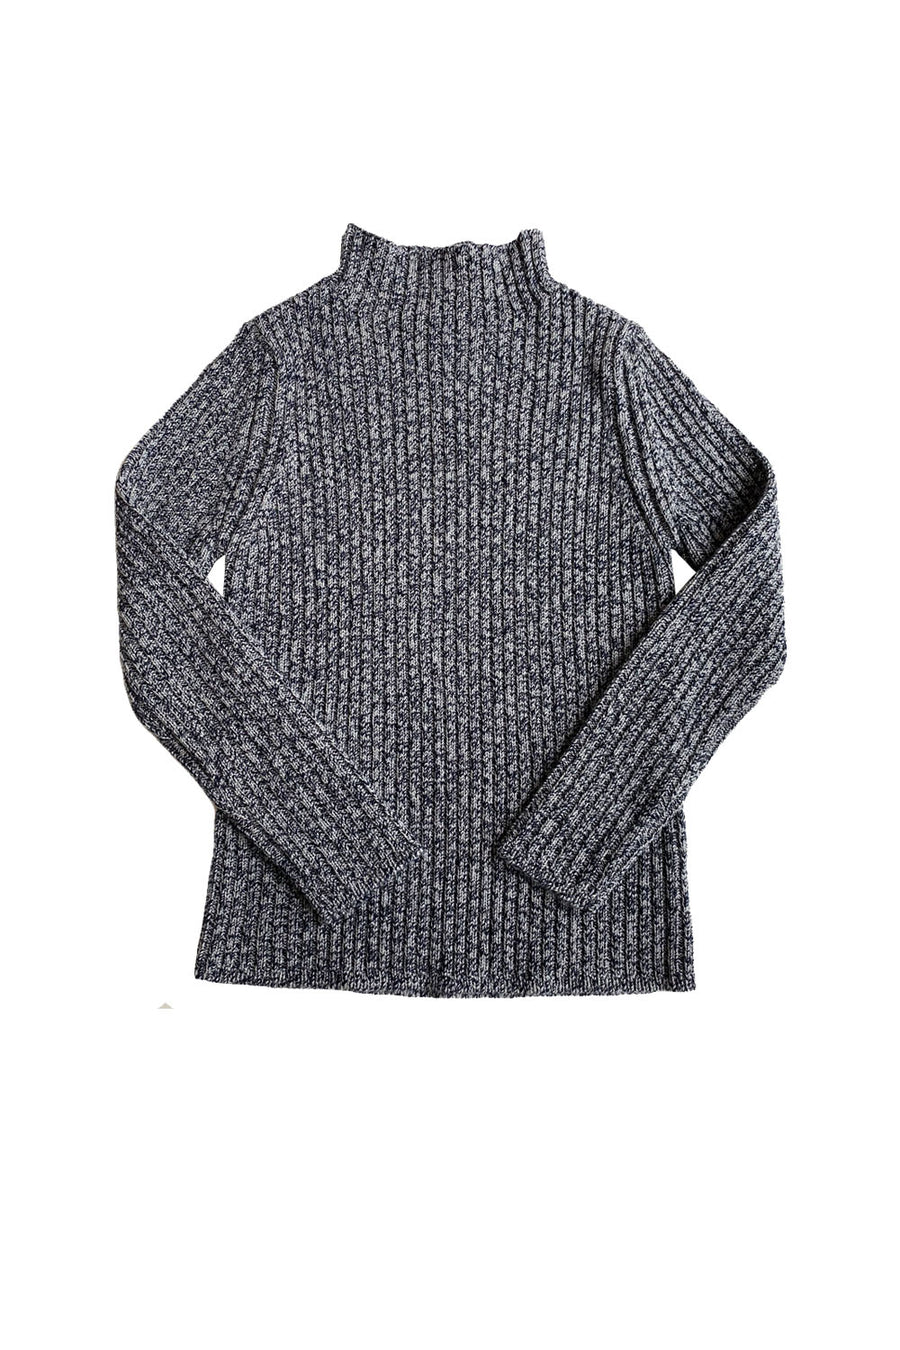 Indigo/Grey L/S Knitted Wool Pullover by Mabli